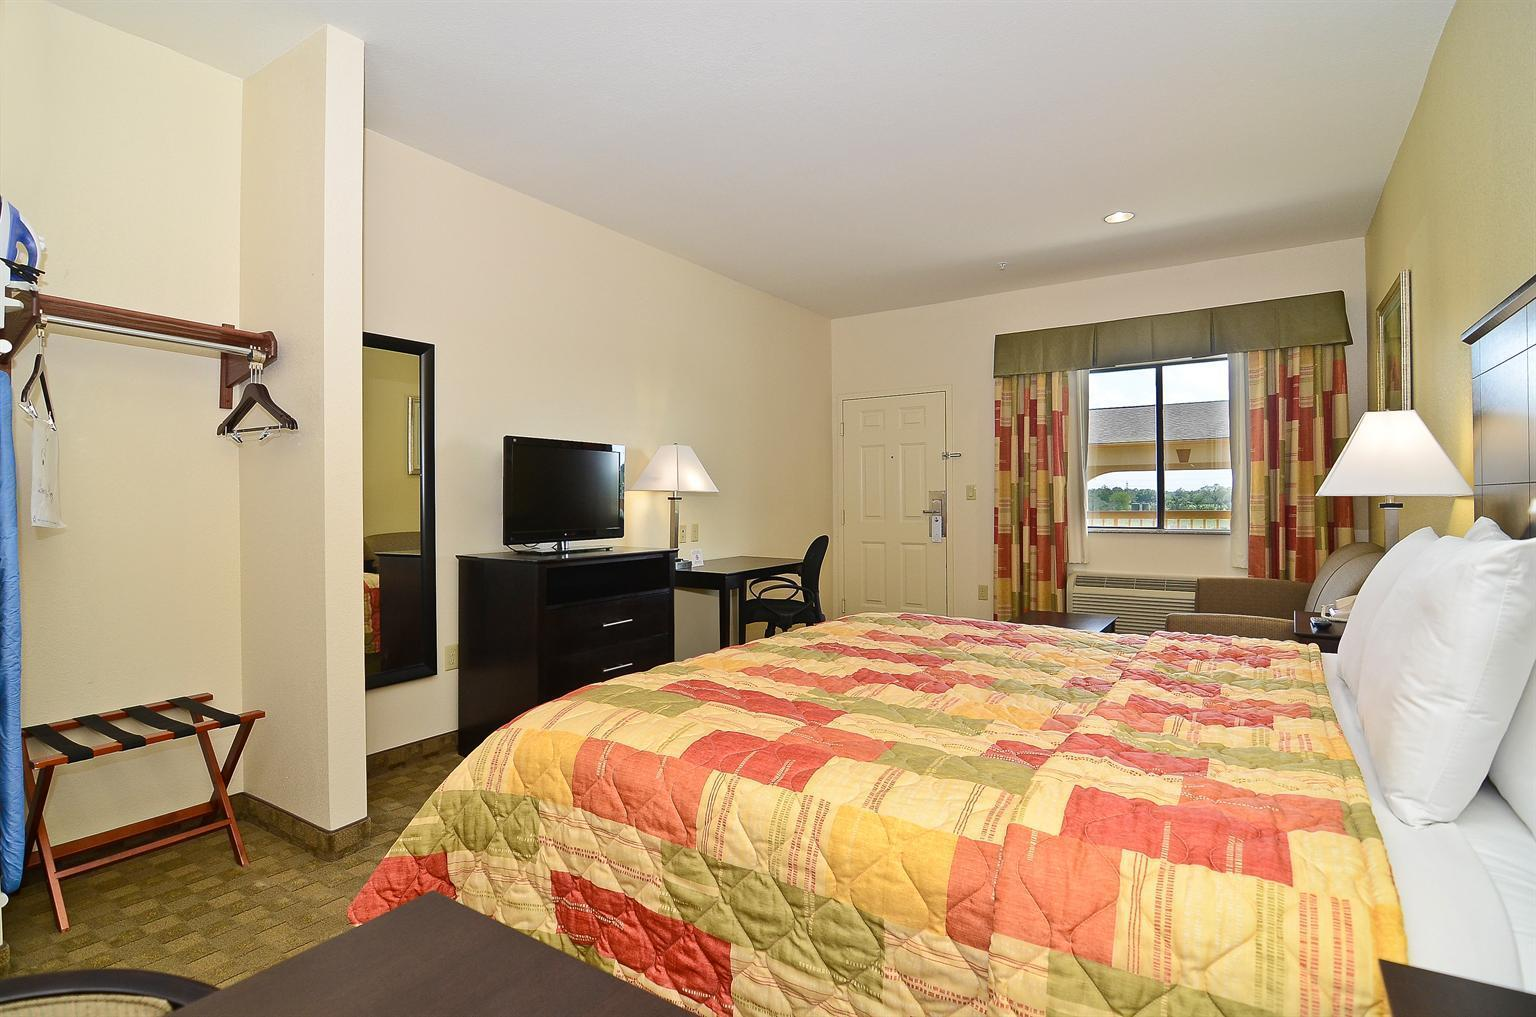 Americas Best Value Inn and Suites Tomball, Harris